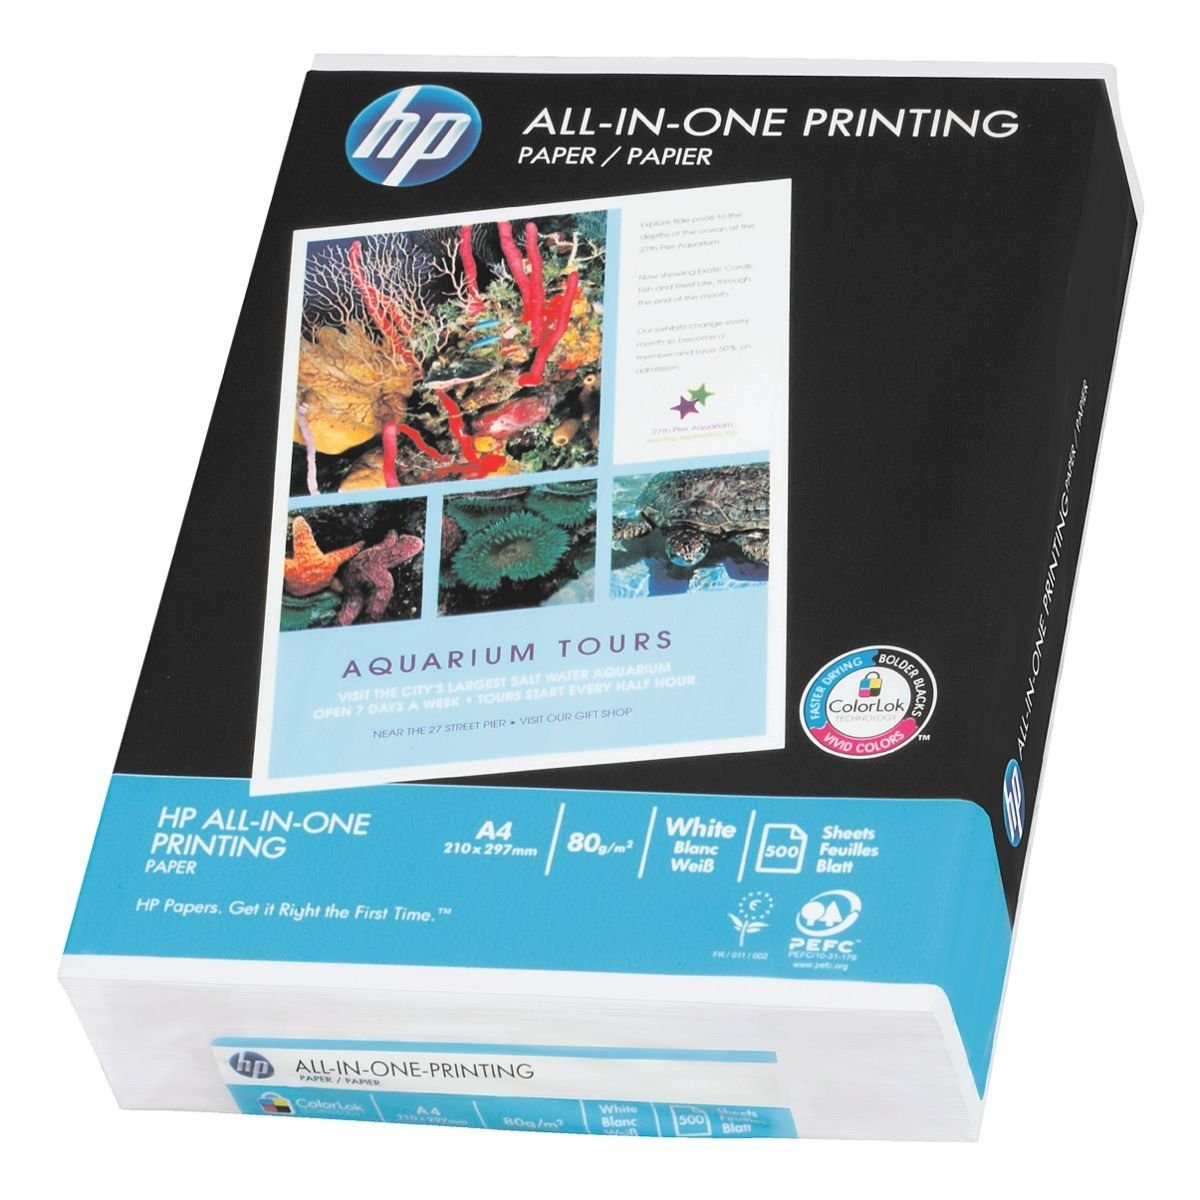 HP Multifunktionales Druckerpapier »All in one«